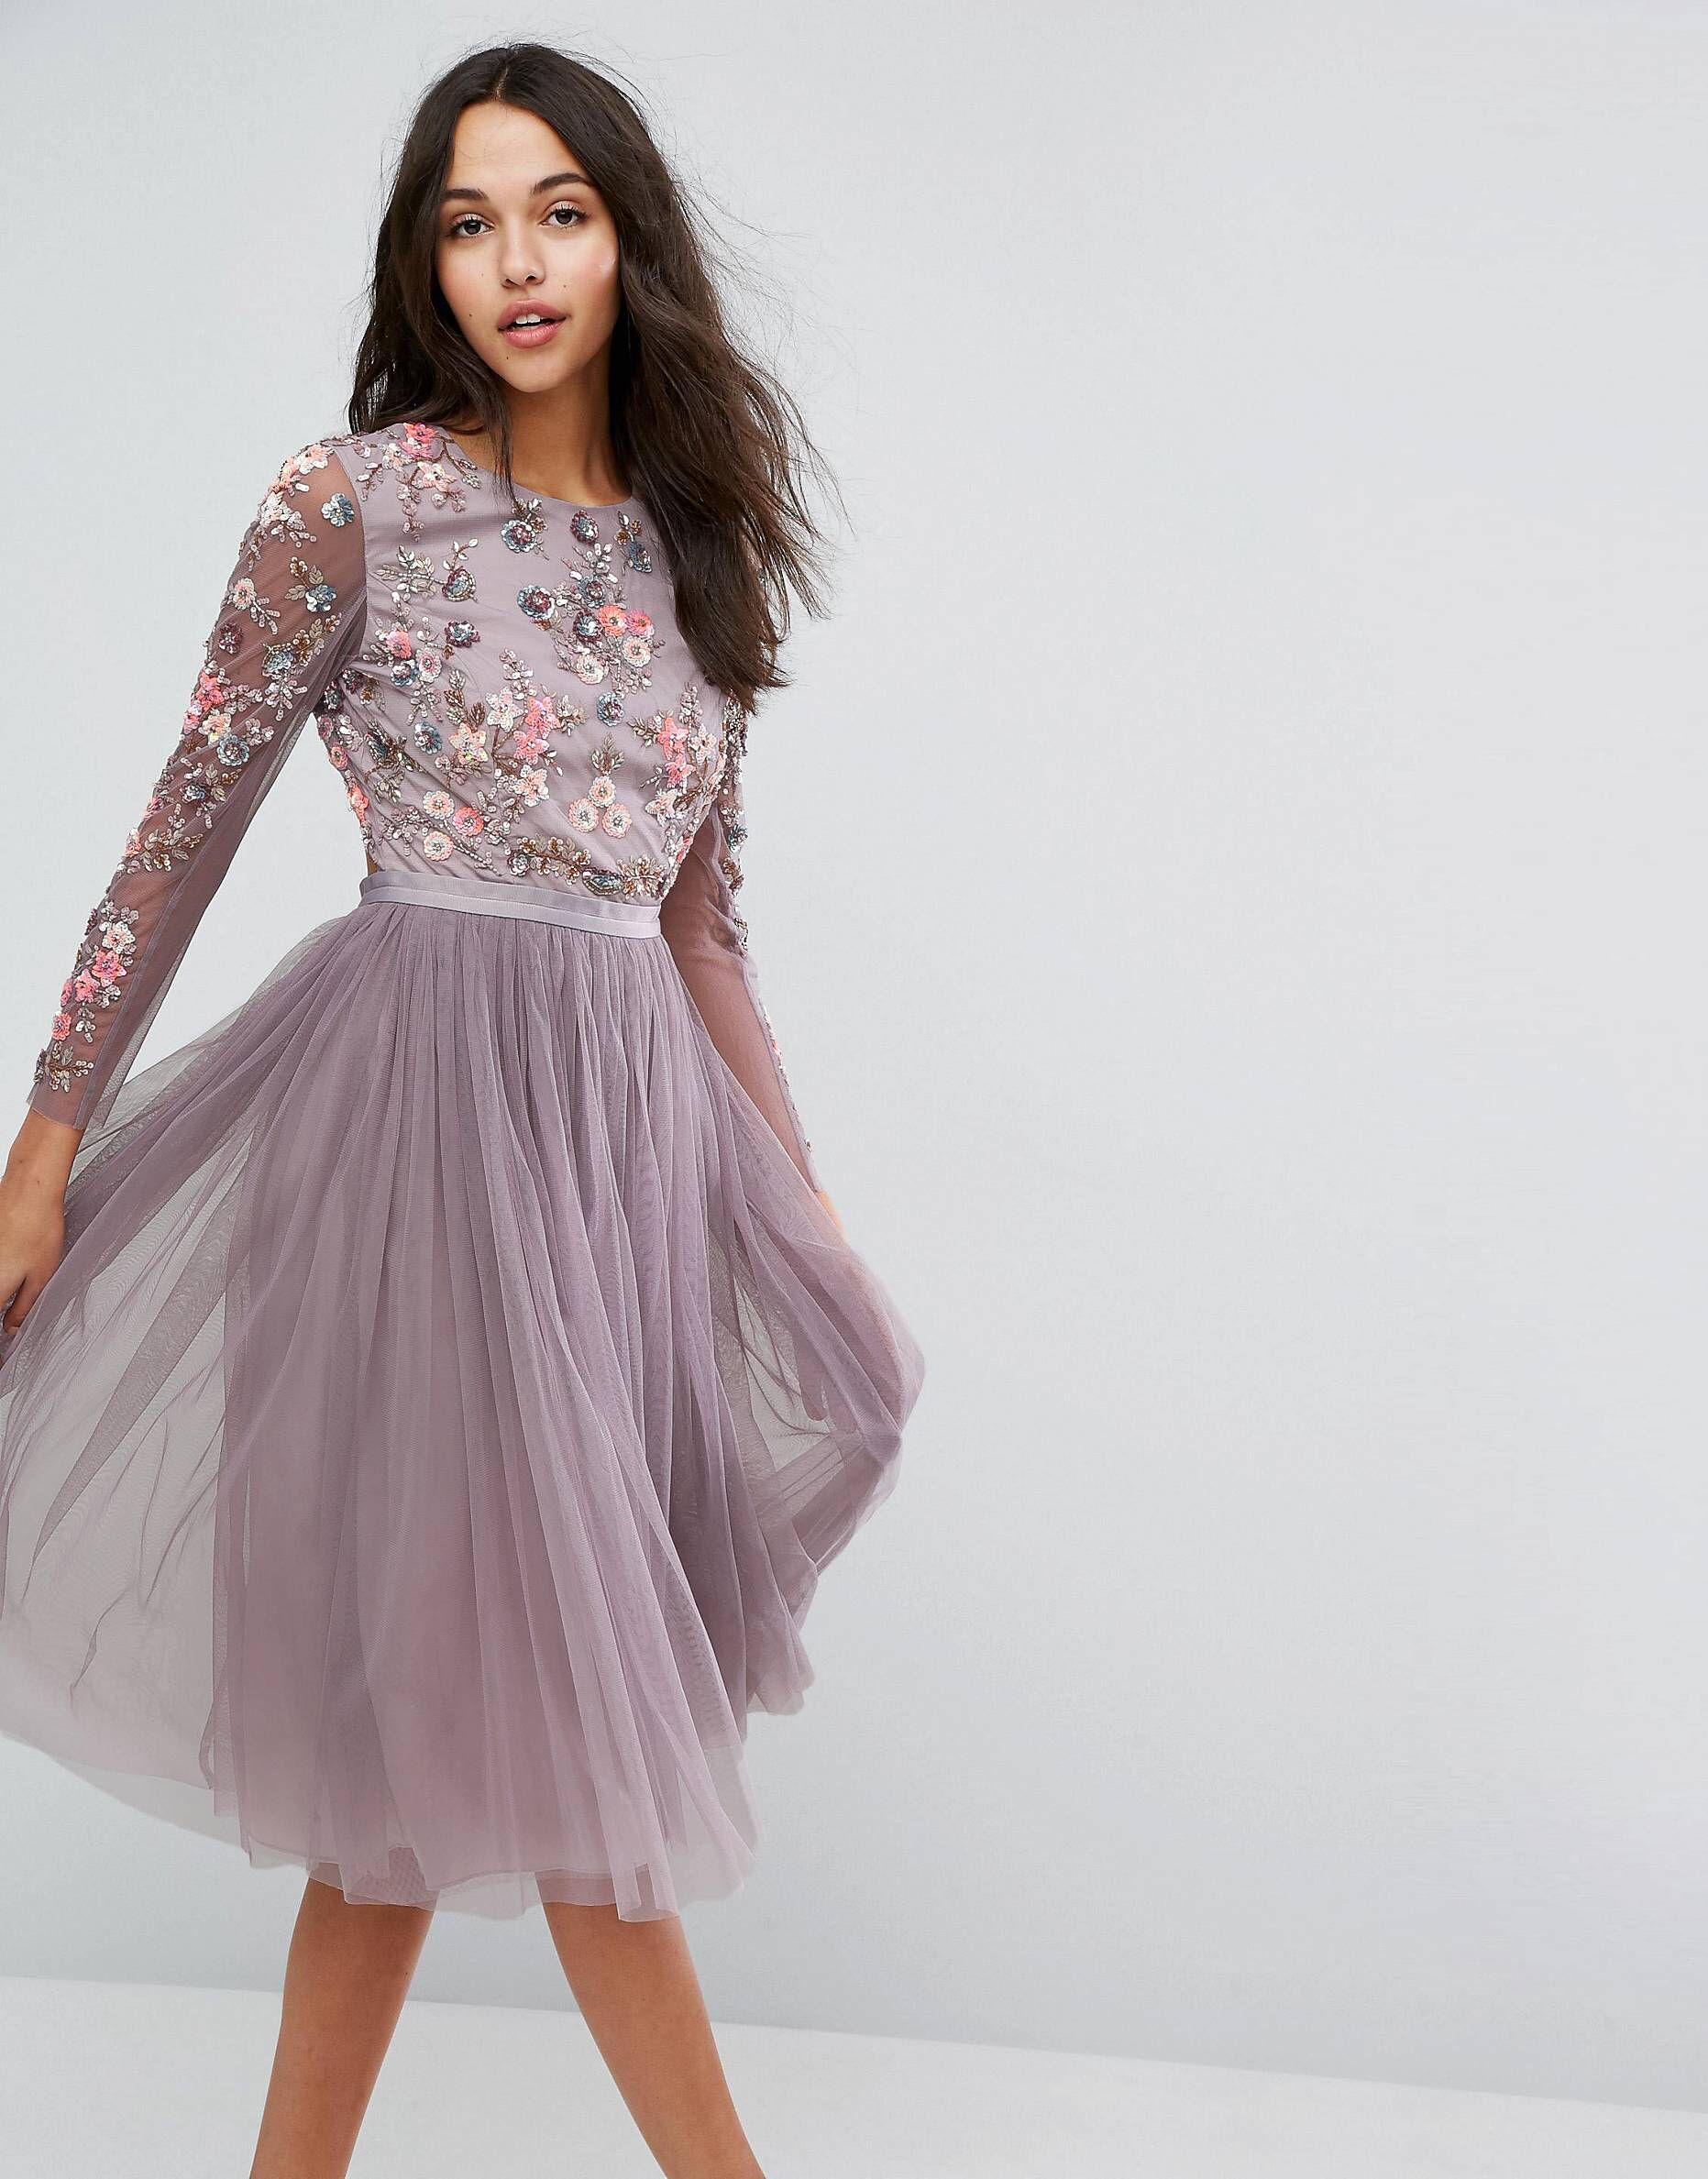 Asos wedding guest dresses with sleeves  LOVE this from ASOS  Платье с вышивкой  Pinterest  Fashion